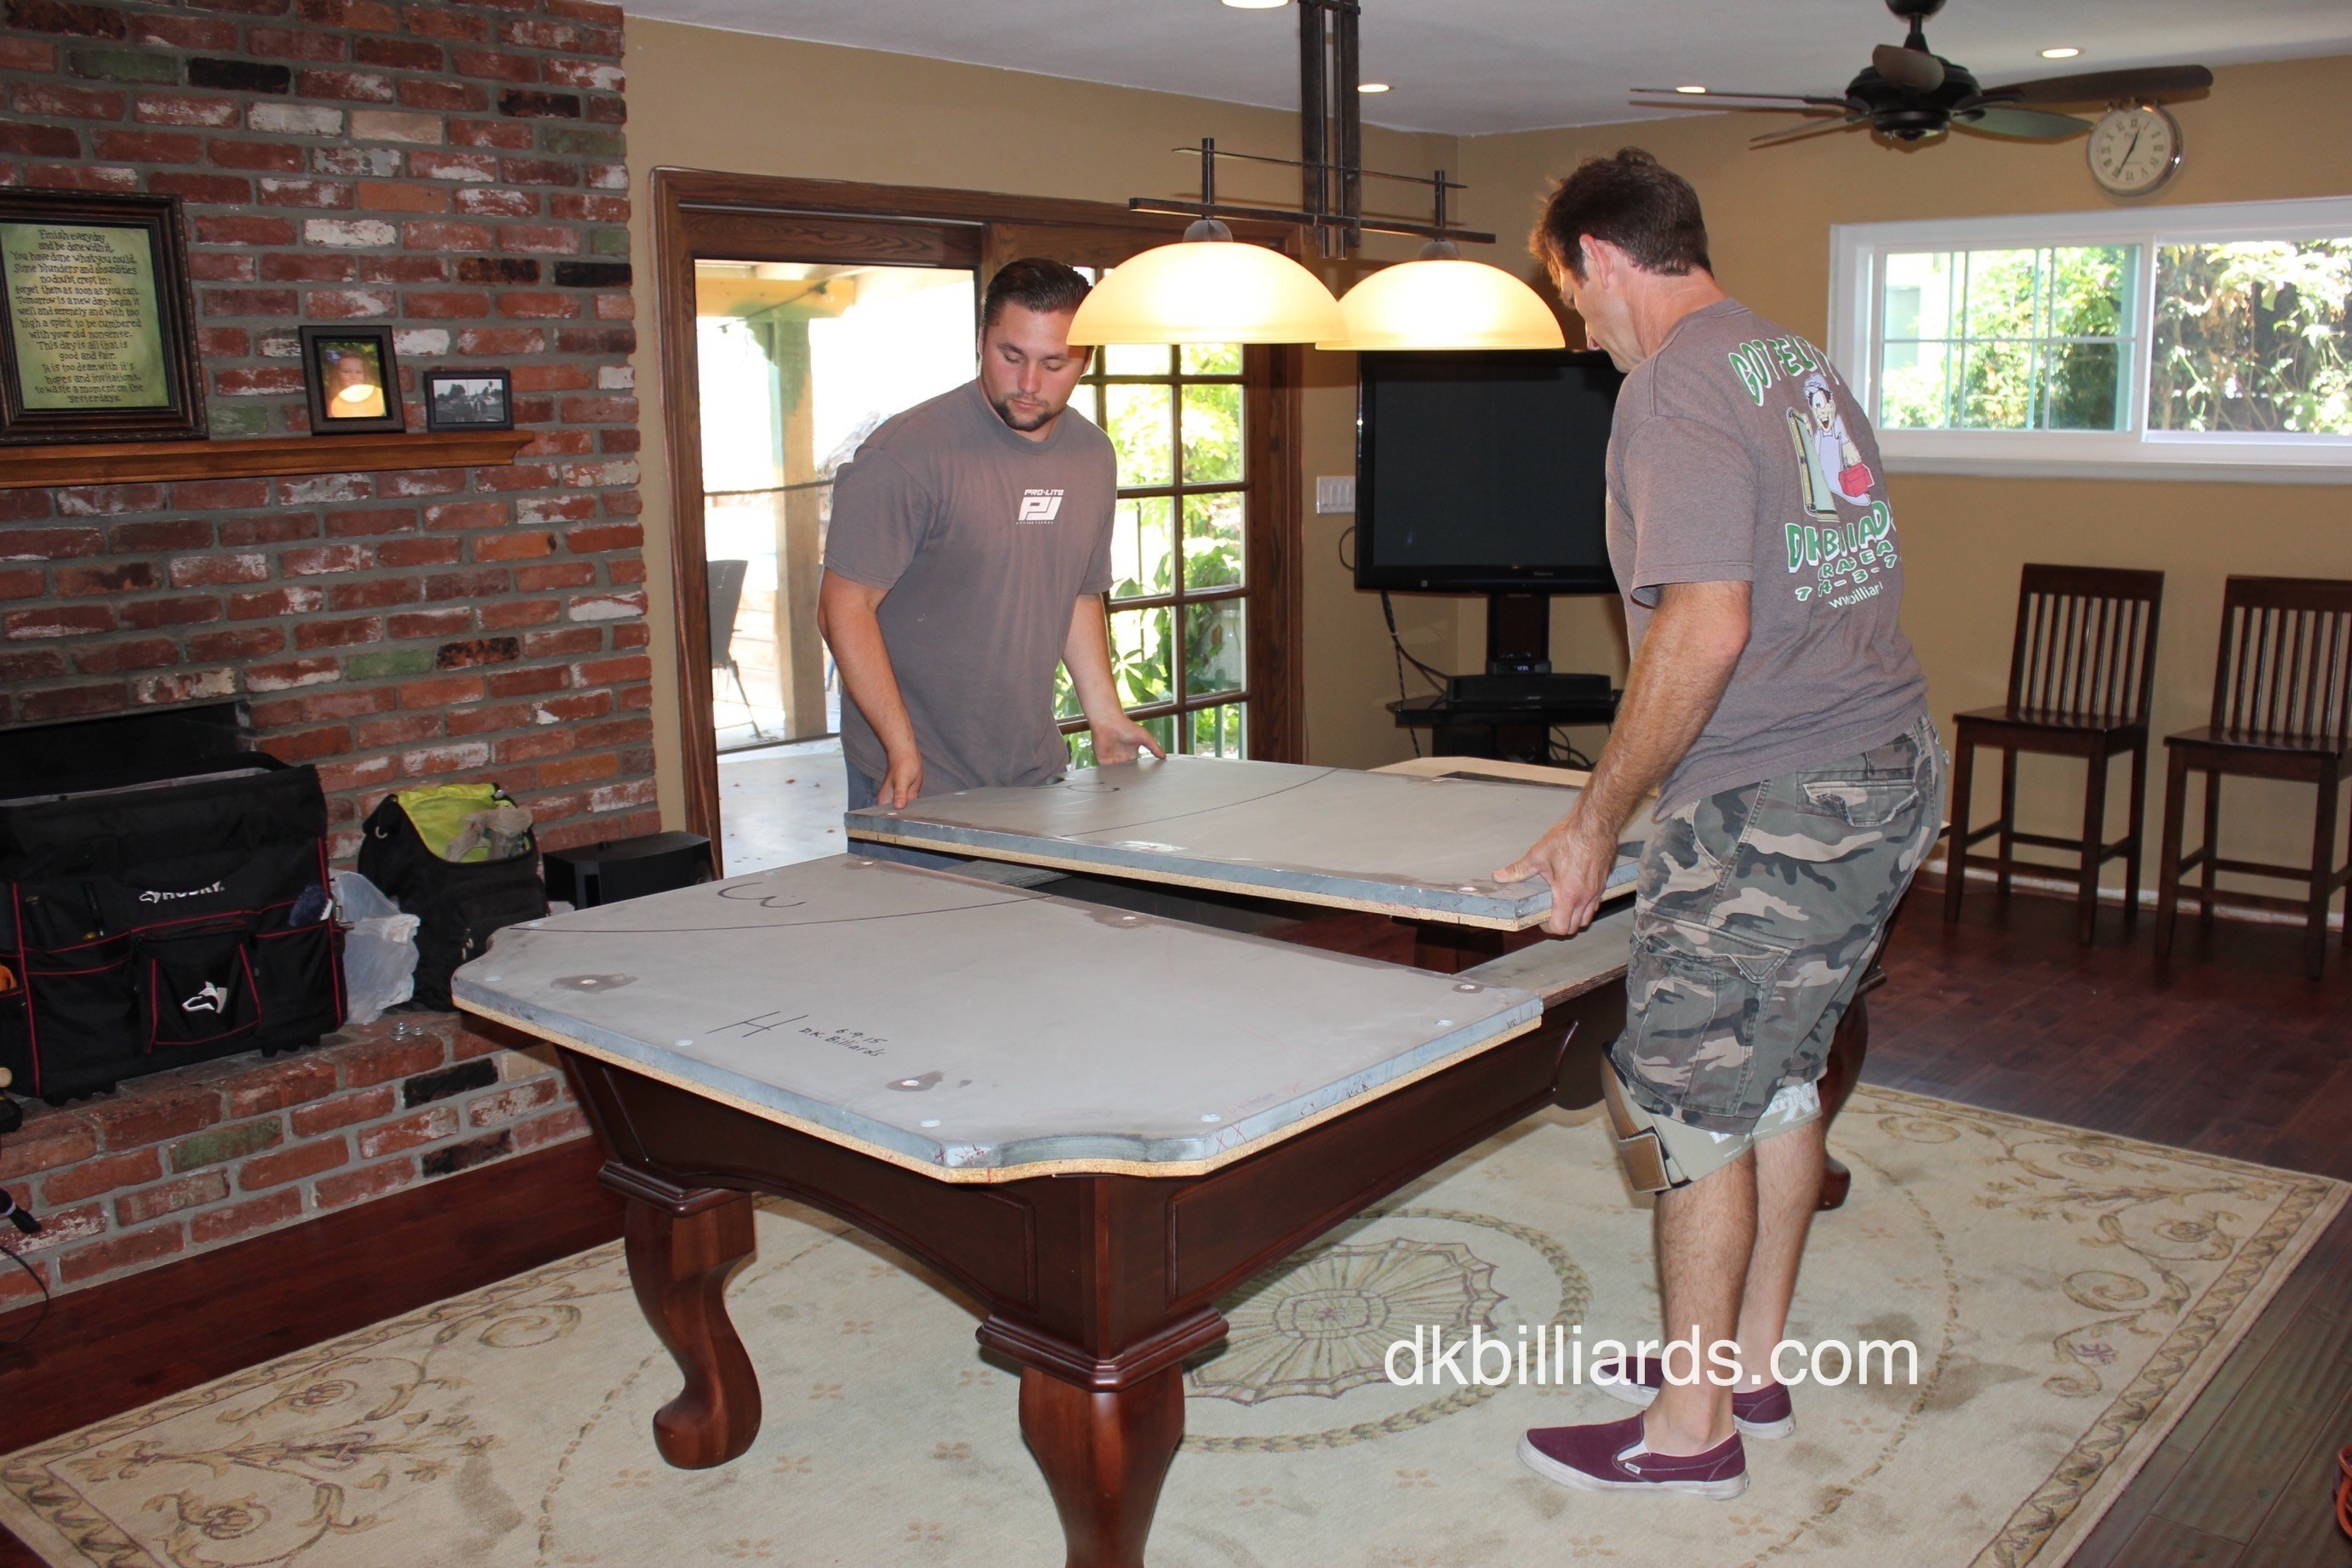 Moving Pool Table Slate Best Home Interior - How to move a pool table a few feet